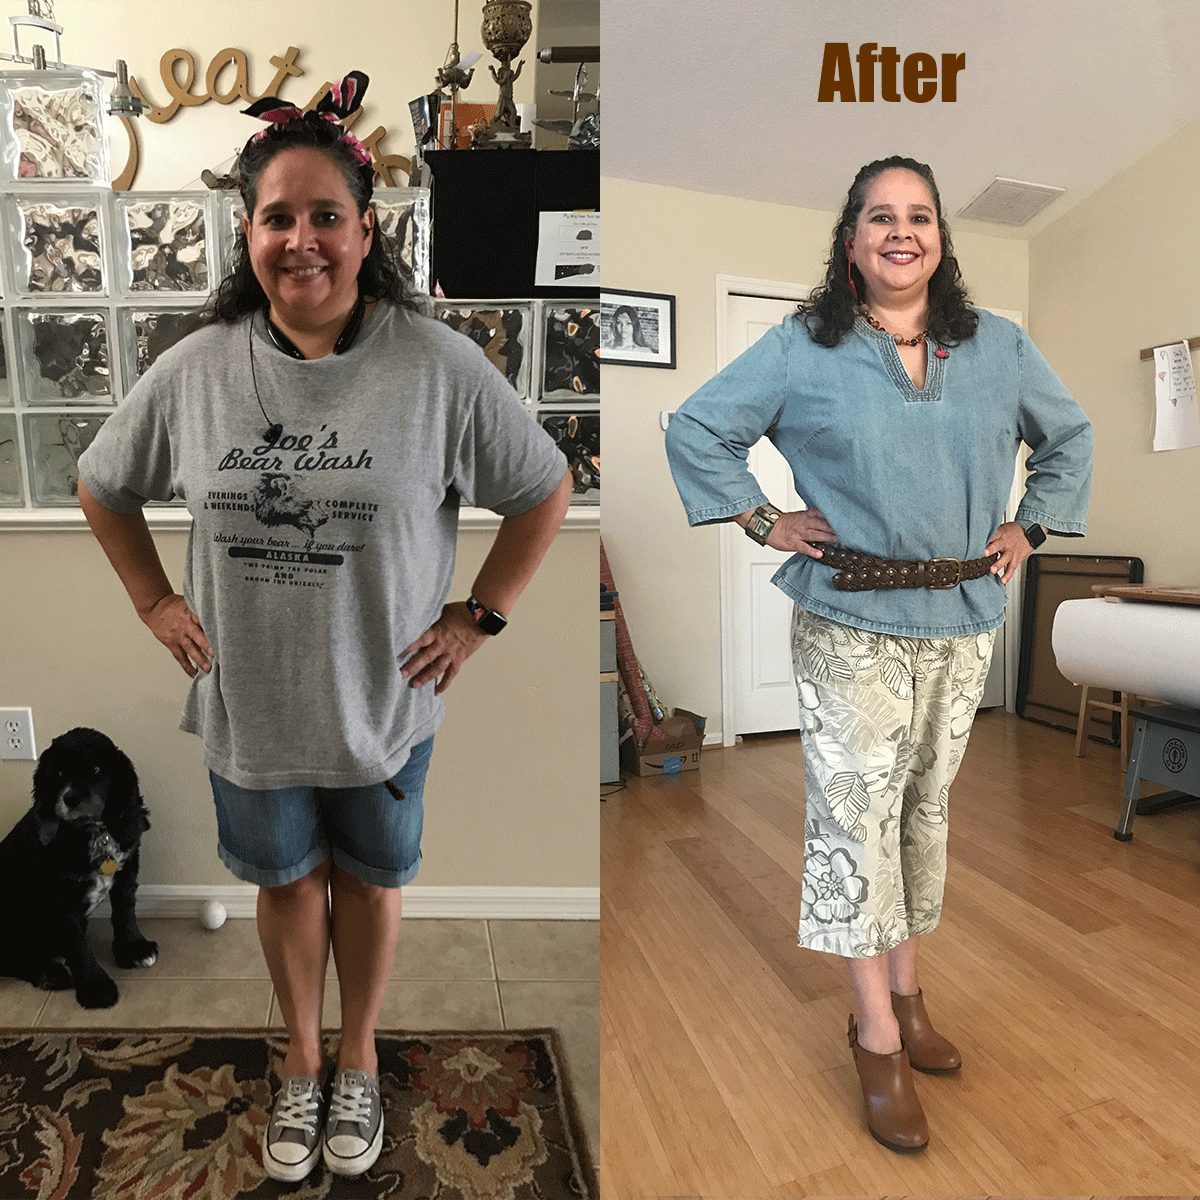 Before & After - Dressing your truth!